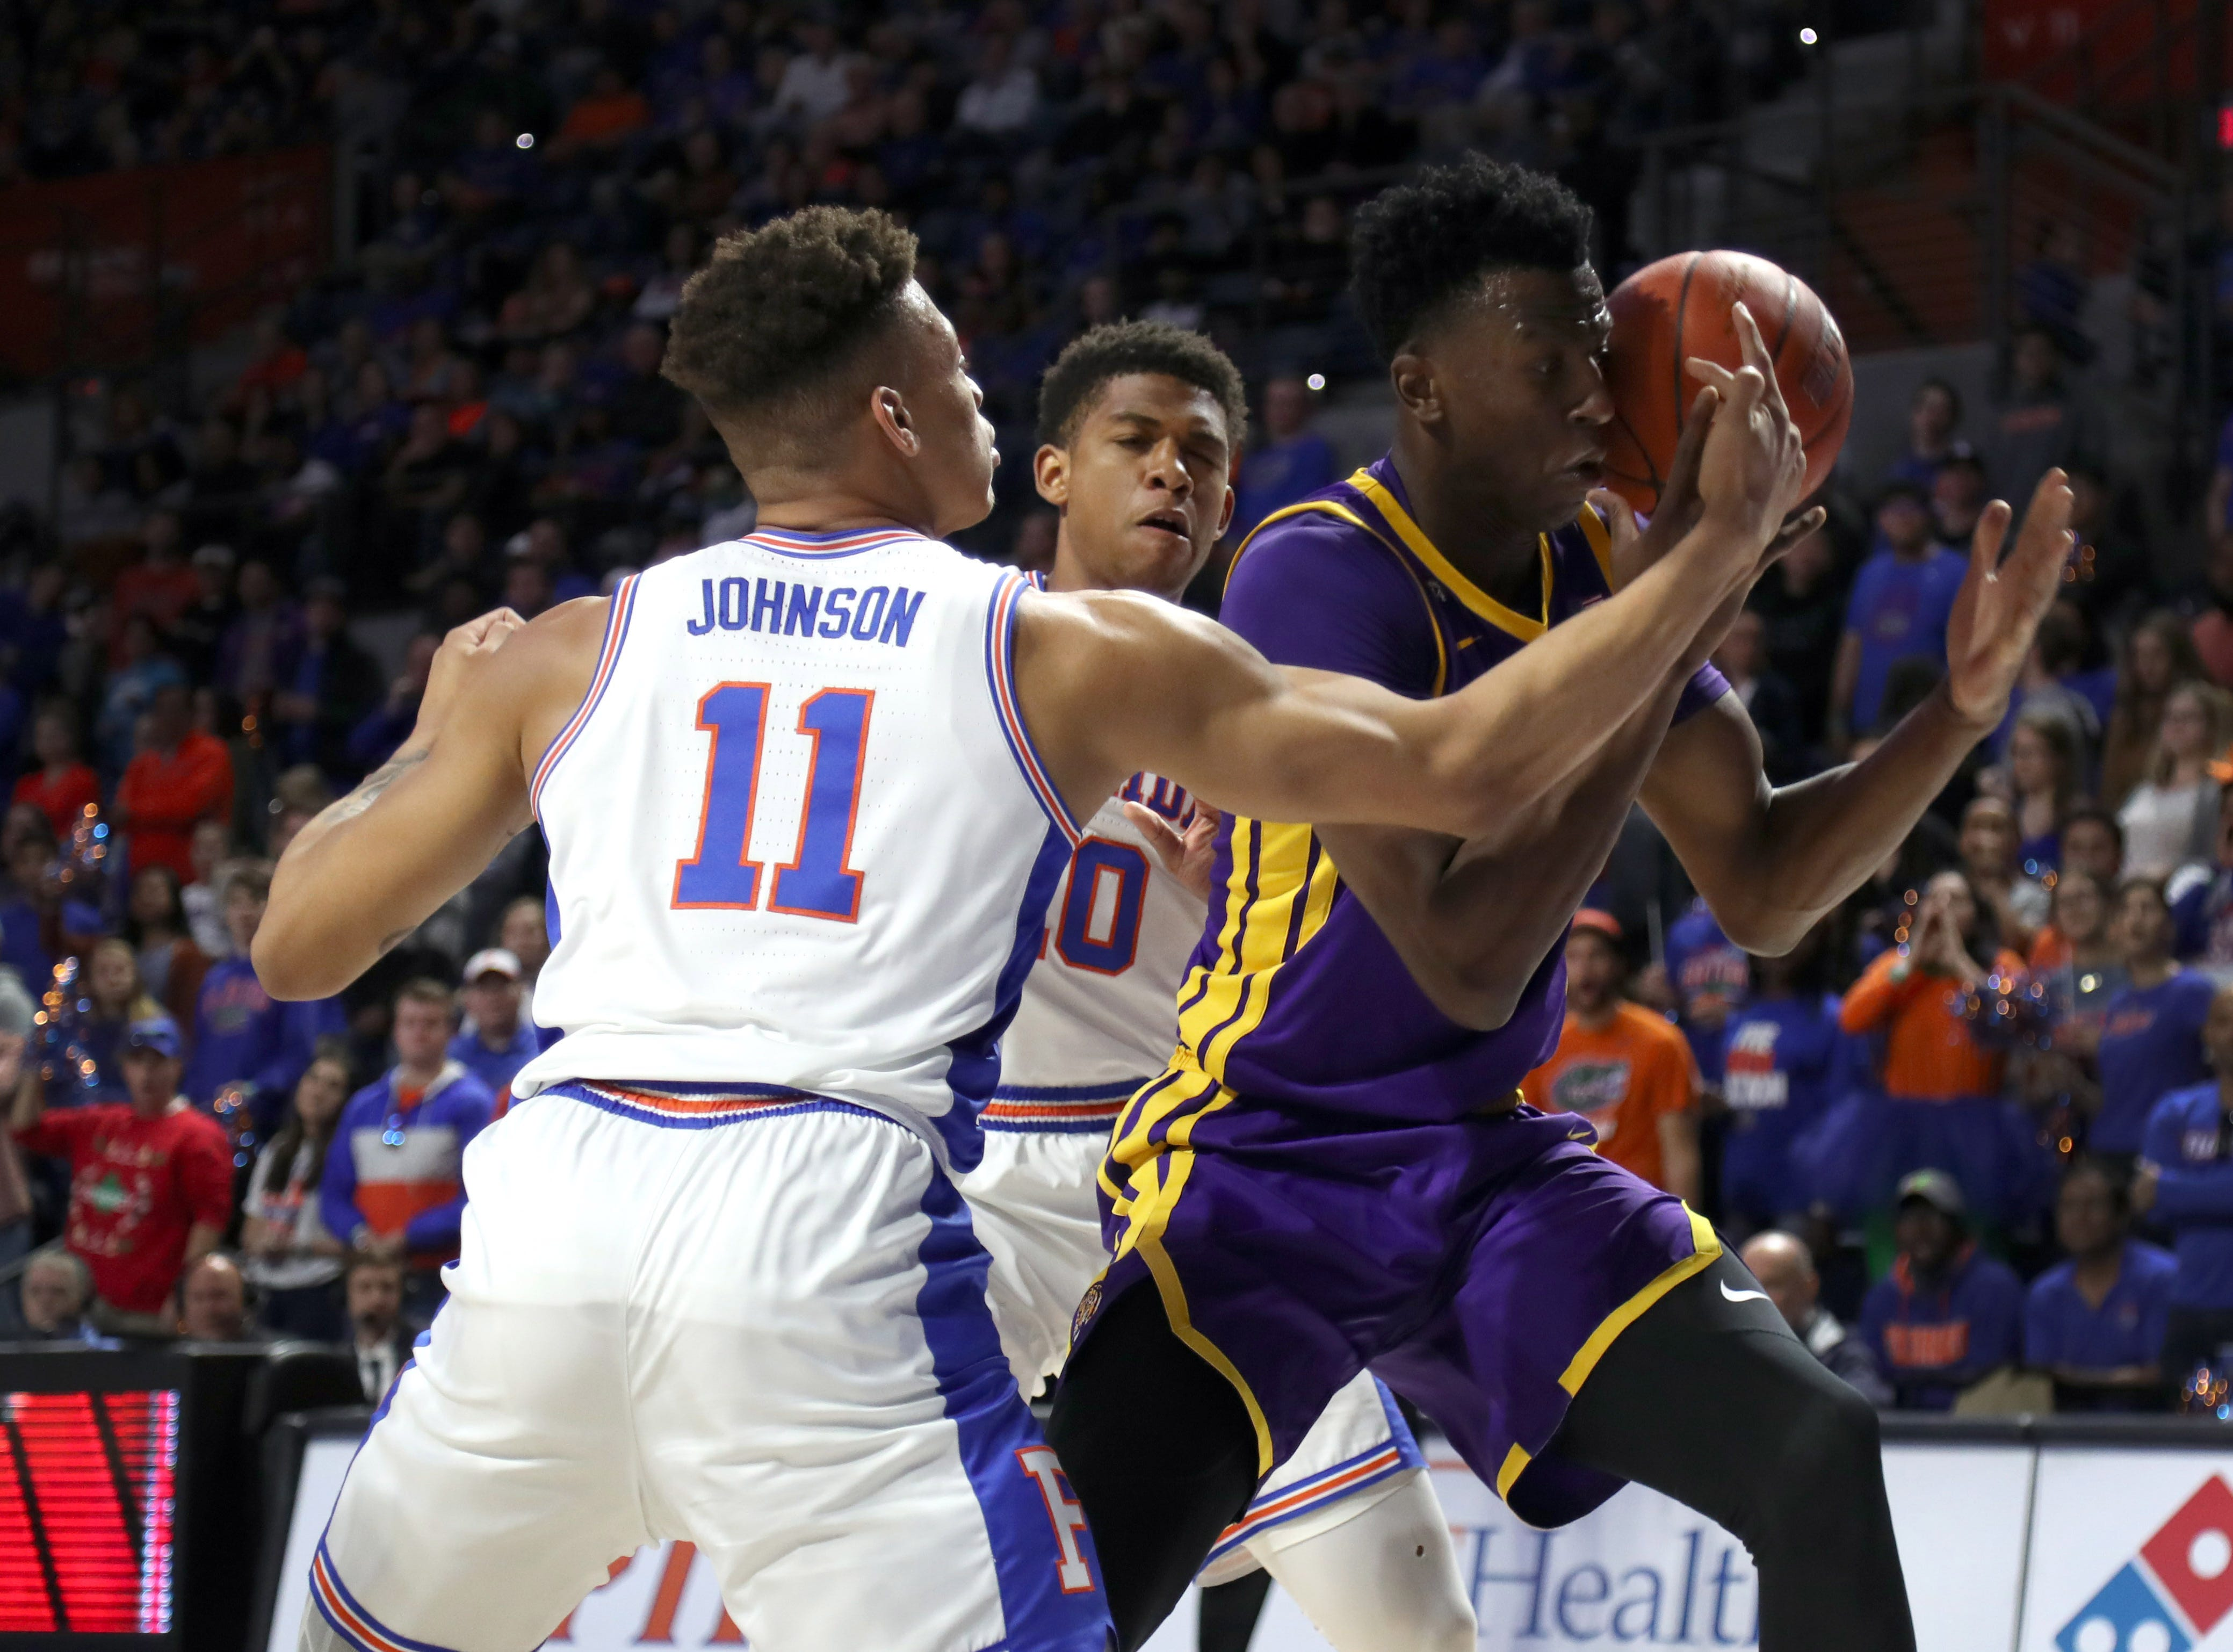 Mar 6, 2019; Gainesville, FL, USA; Florida Gators forward Keyontae Johnson (11) forces LSU Tigers forward Kavell Bigby-Williams (11) to turn the ball over during the first half at Exactech Arena. Mandatory Credit: Kim Klement-USA TODAY Sports